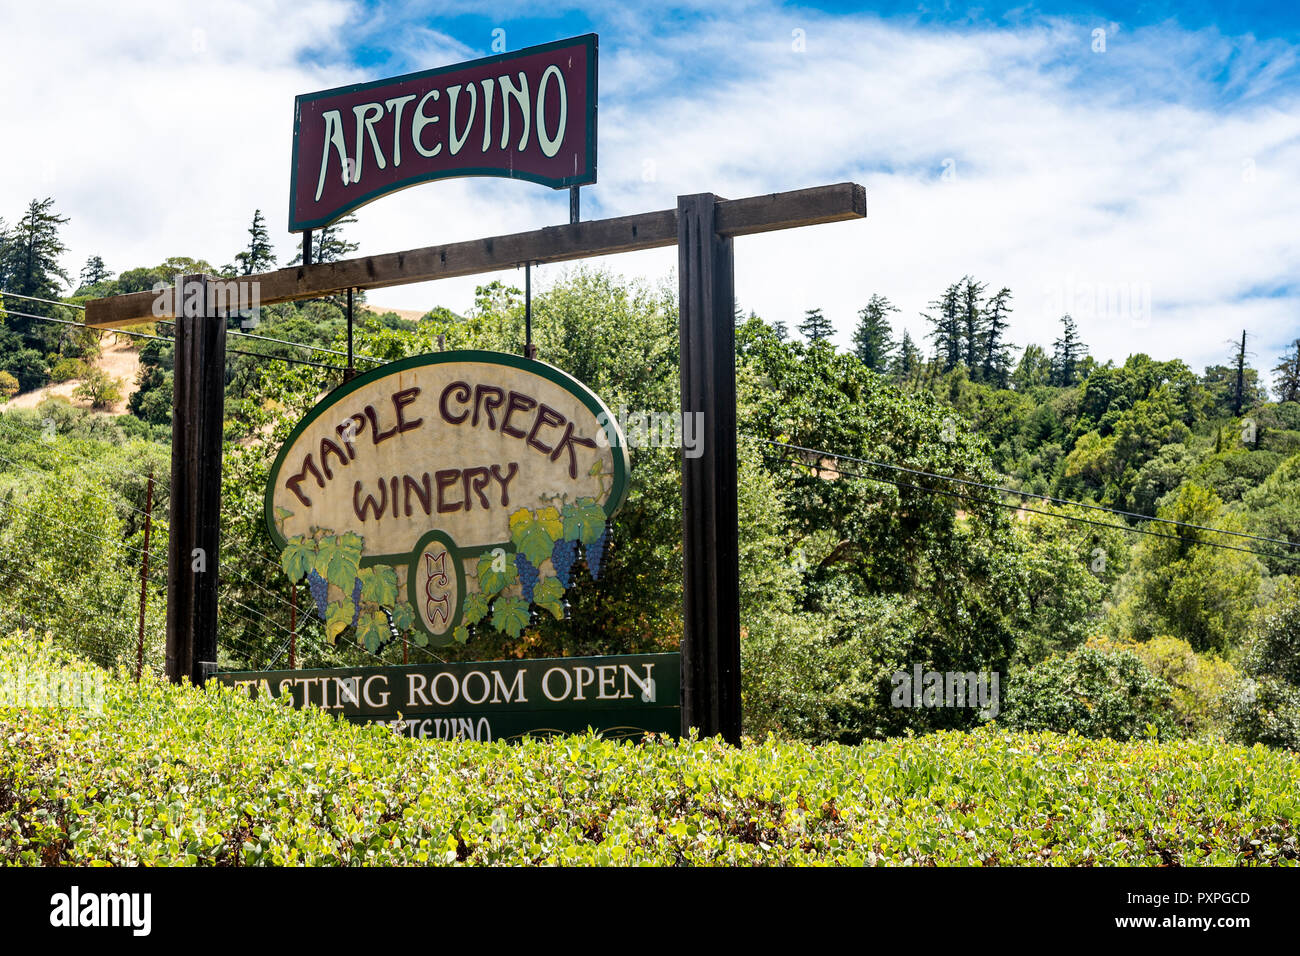 JULY 1 2018 - YORKVILLE, CALIFORNIA: Sign for the Maple Creek Winery, a winery and wine tasting room in the Anderson Valley area of California on a su - Stock Image